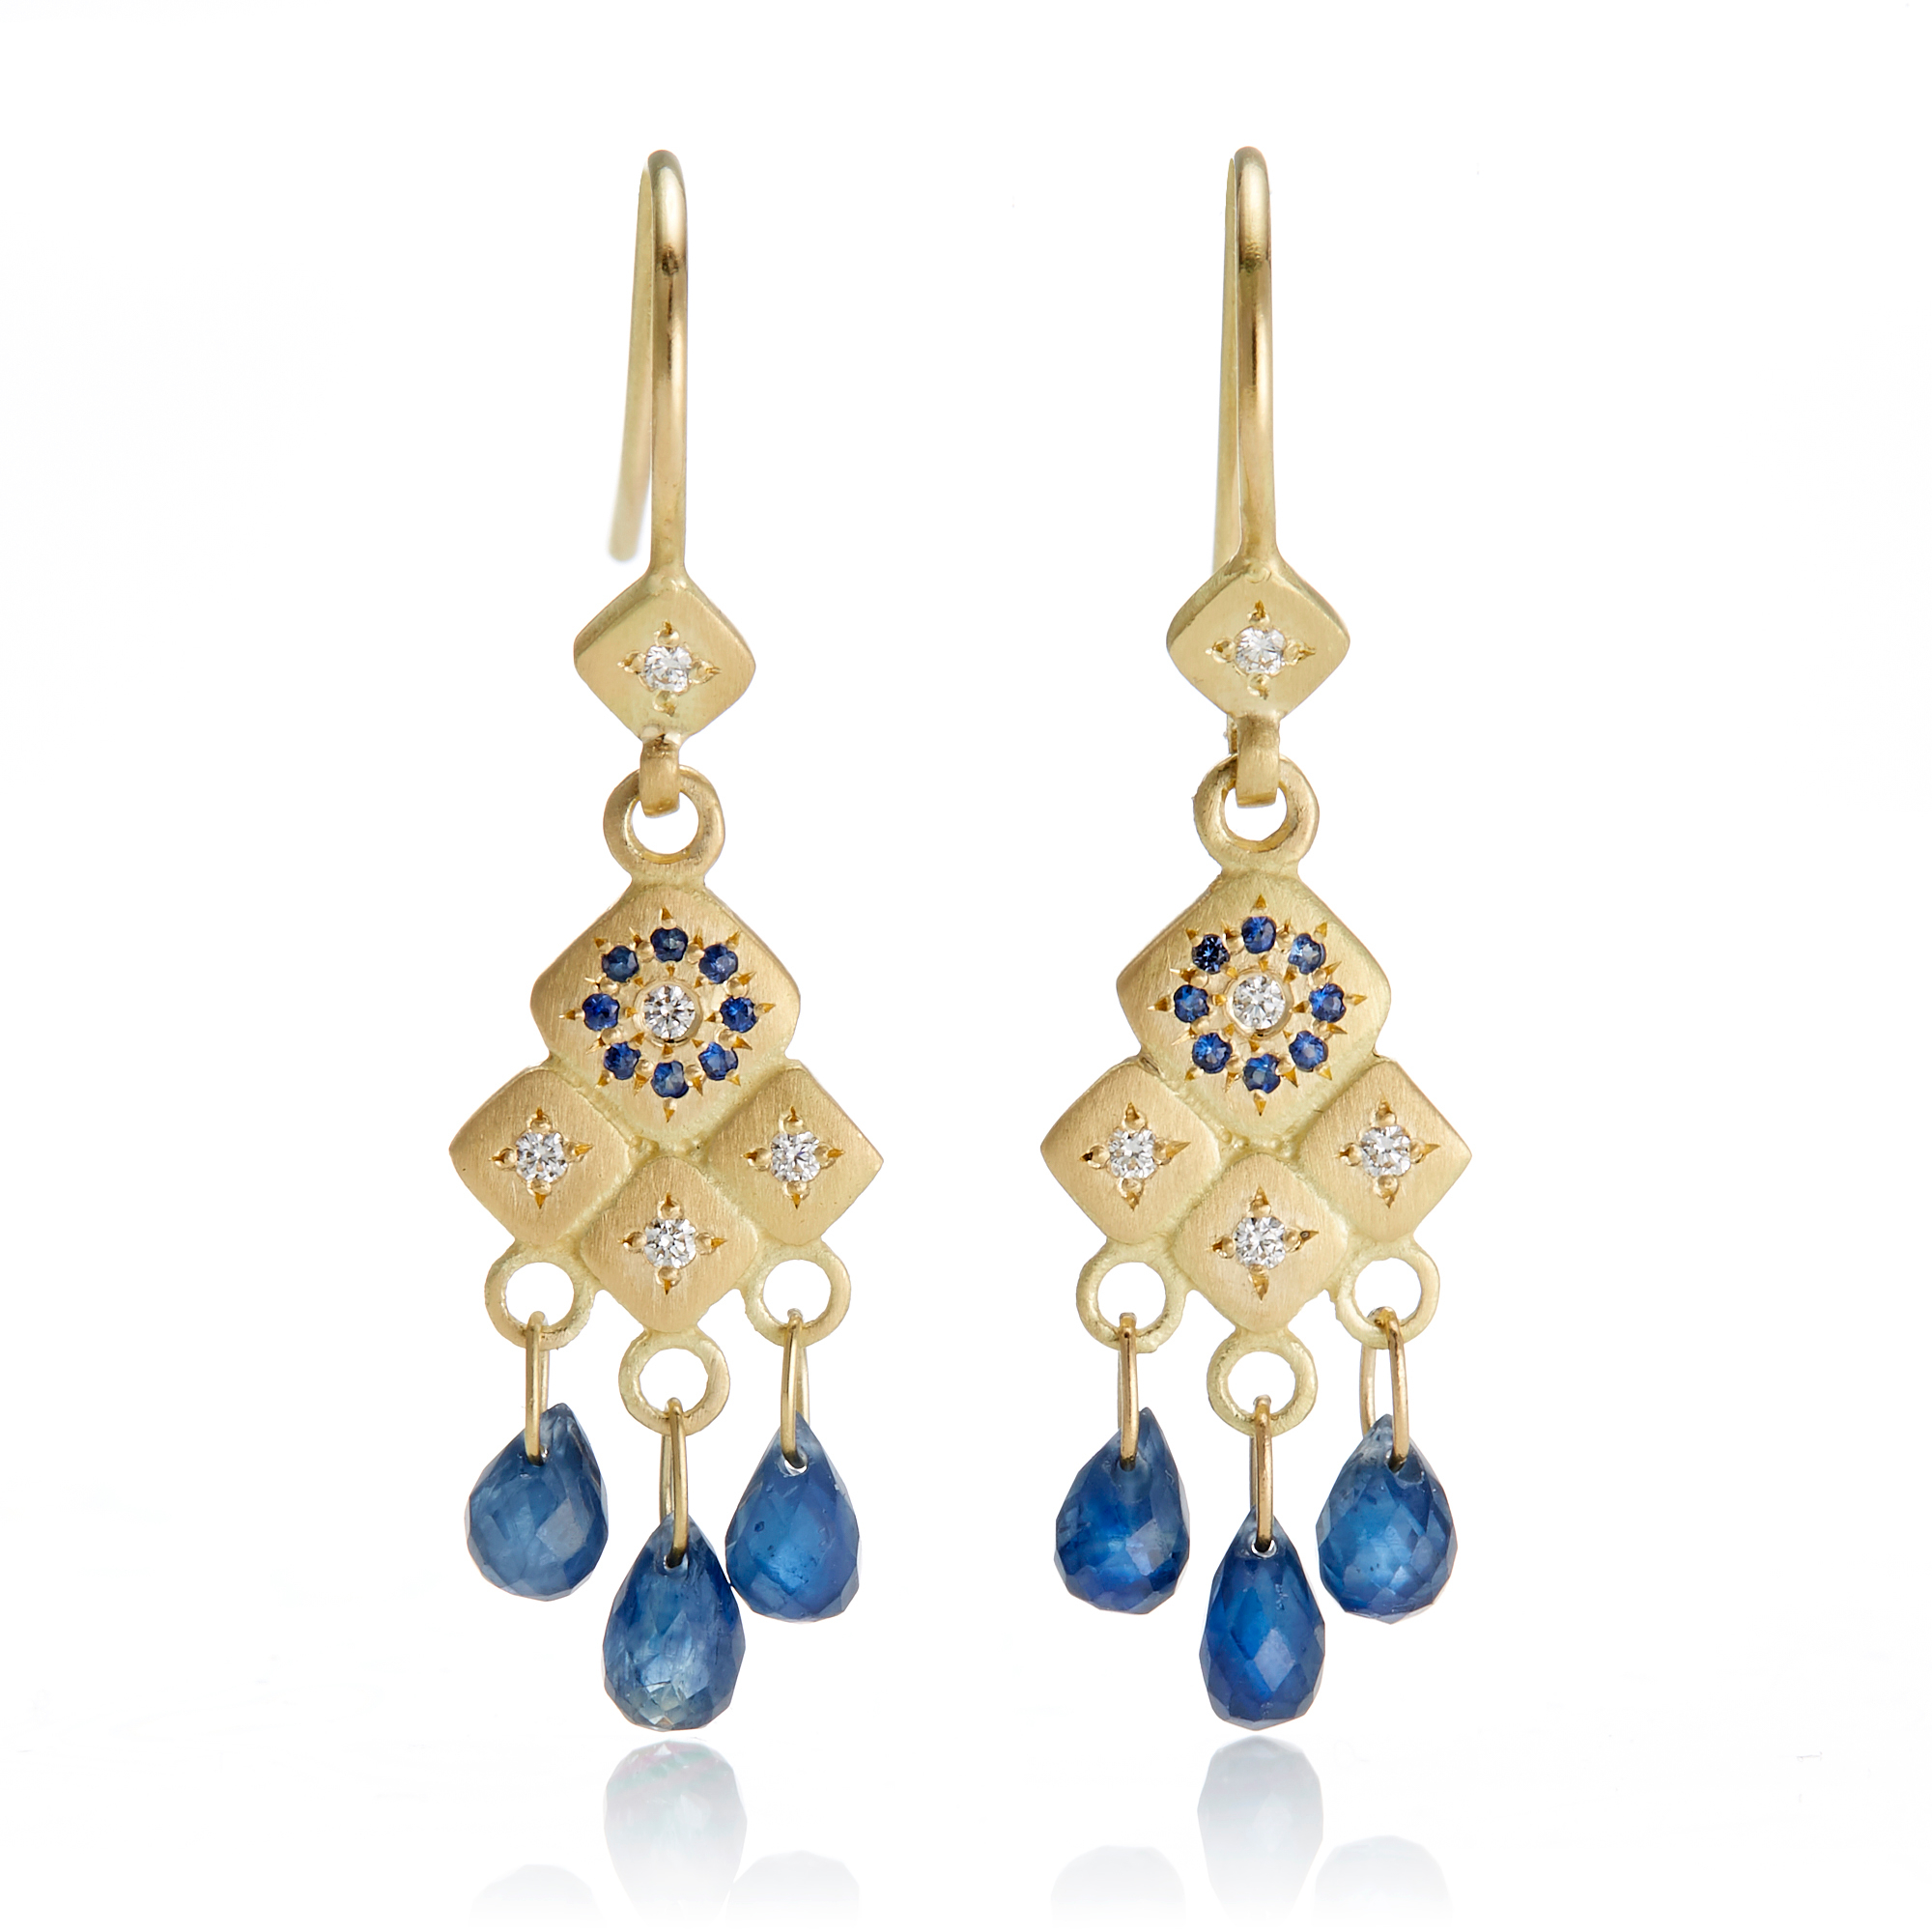 Adel Chefridi Blue Sapphire & Diamond Mosaic Chandelier Earrings